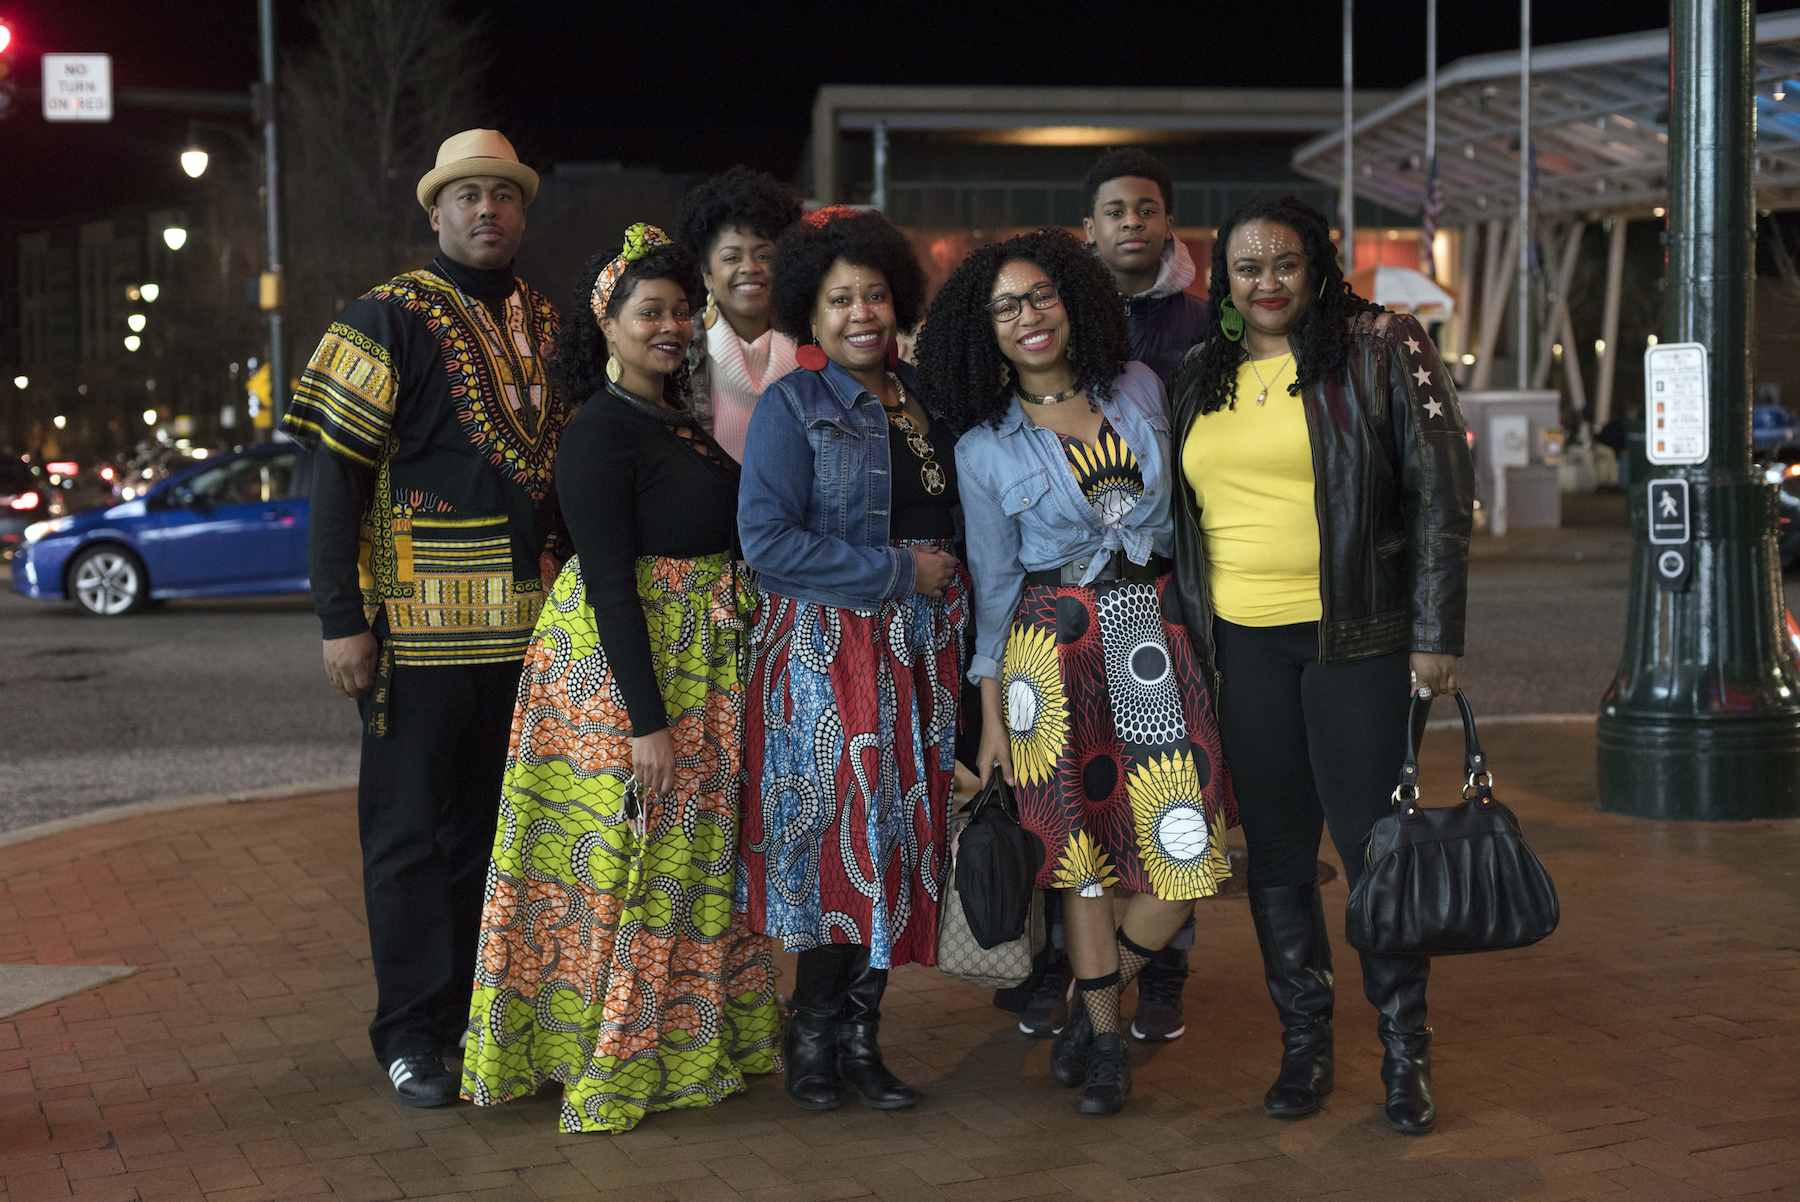 "<div class=""meta image-caption""><div class=""origin-logo origin-image ap""><span>AP</span></div><span class=""caption-text"">The Lawton family poses for a portrait before seeing Black Panther in Silver Spring, Md., Thursday, Feb. 15, 2018. (AP Photo/Sait Serkan Gurbuz)</span></div>"